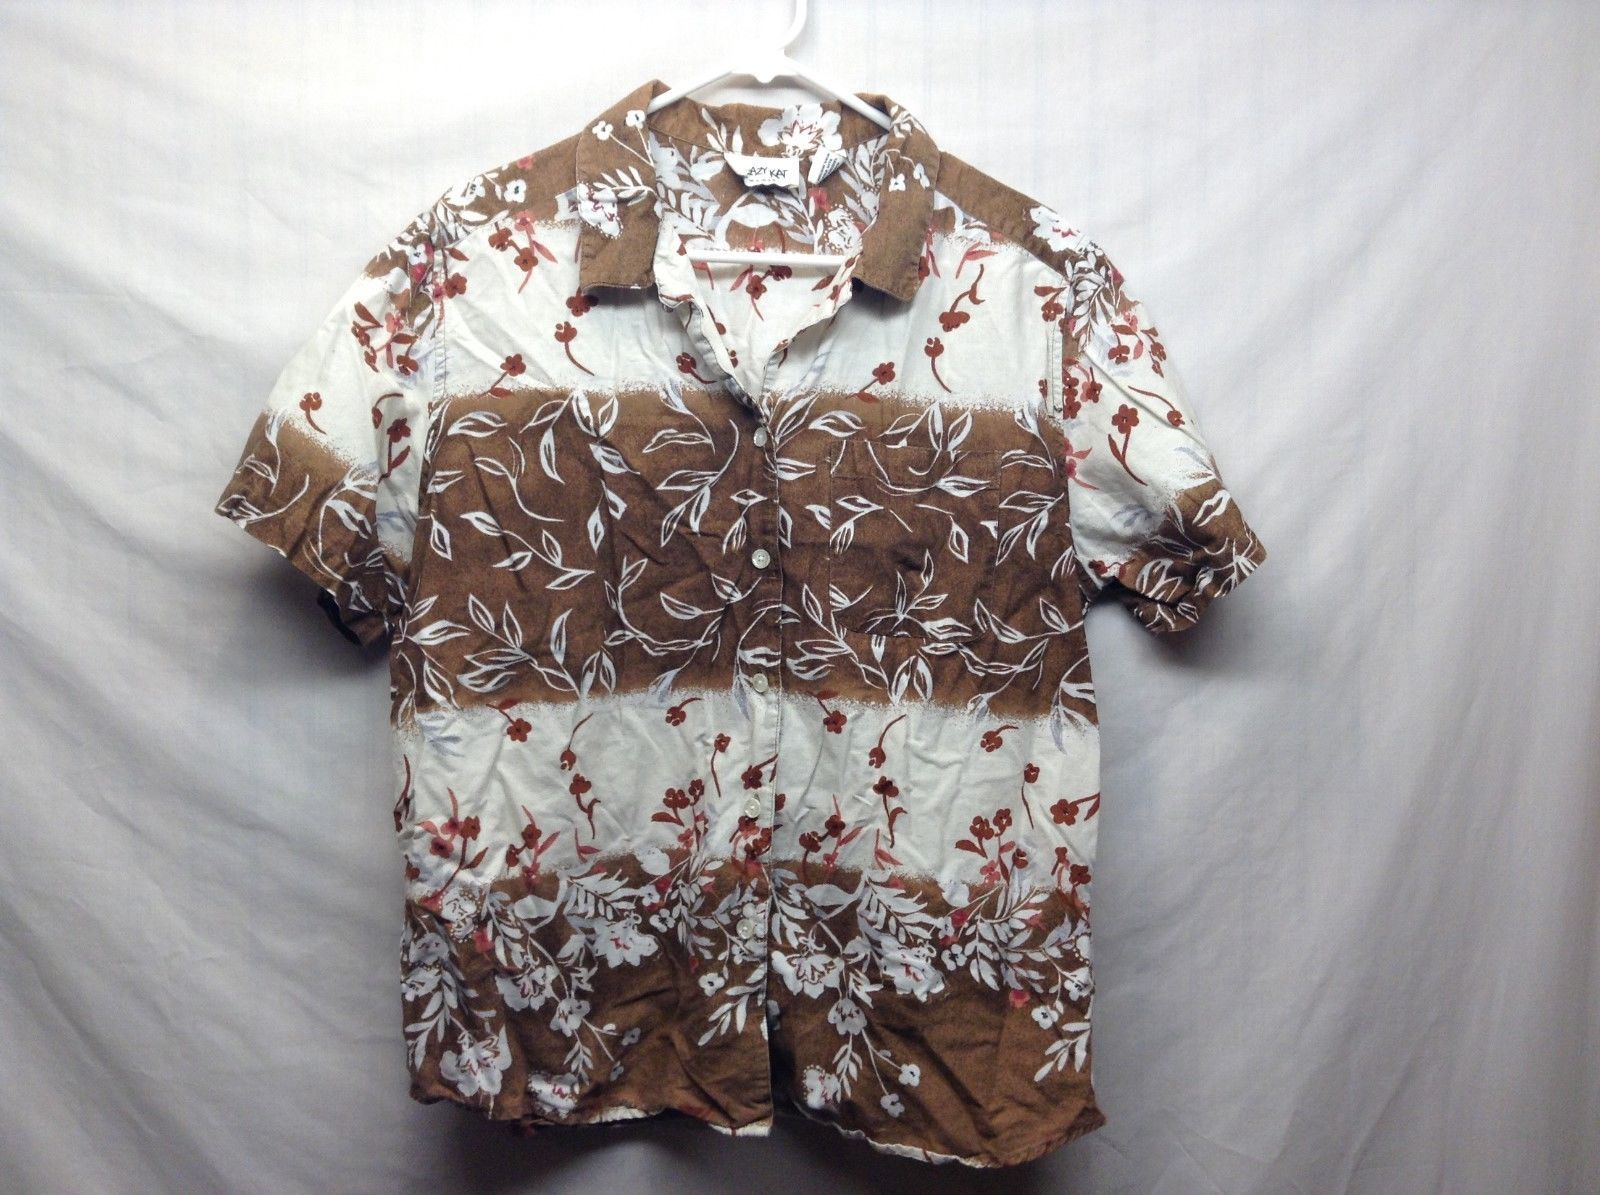 Krazy Kat Short Sleeve Collared Button Up Brown White Shirt Sz 1X